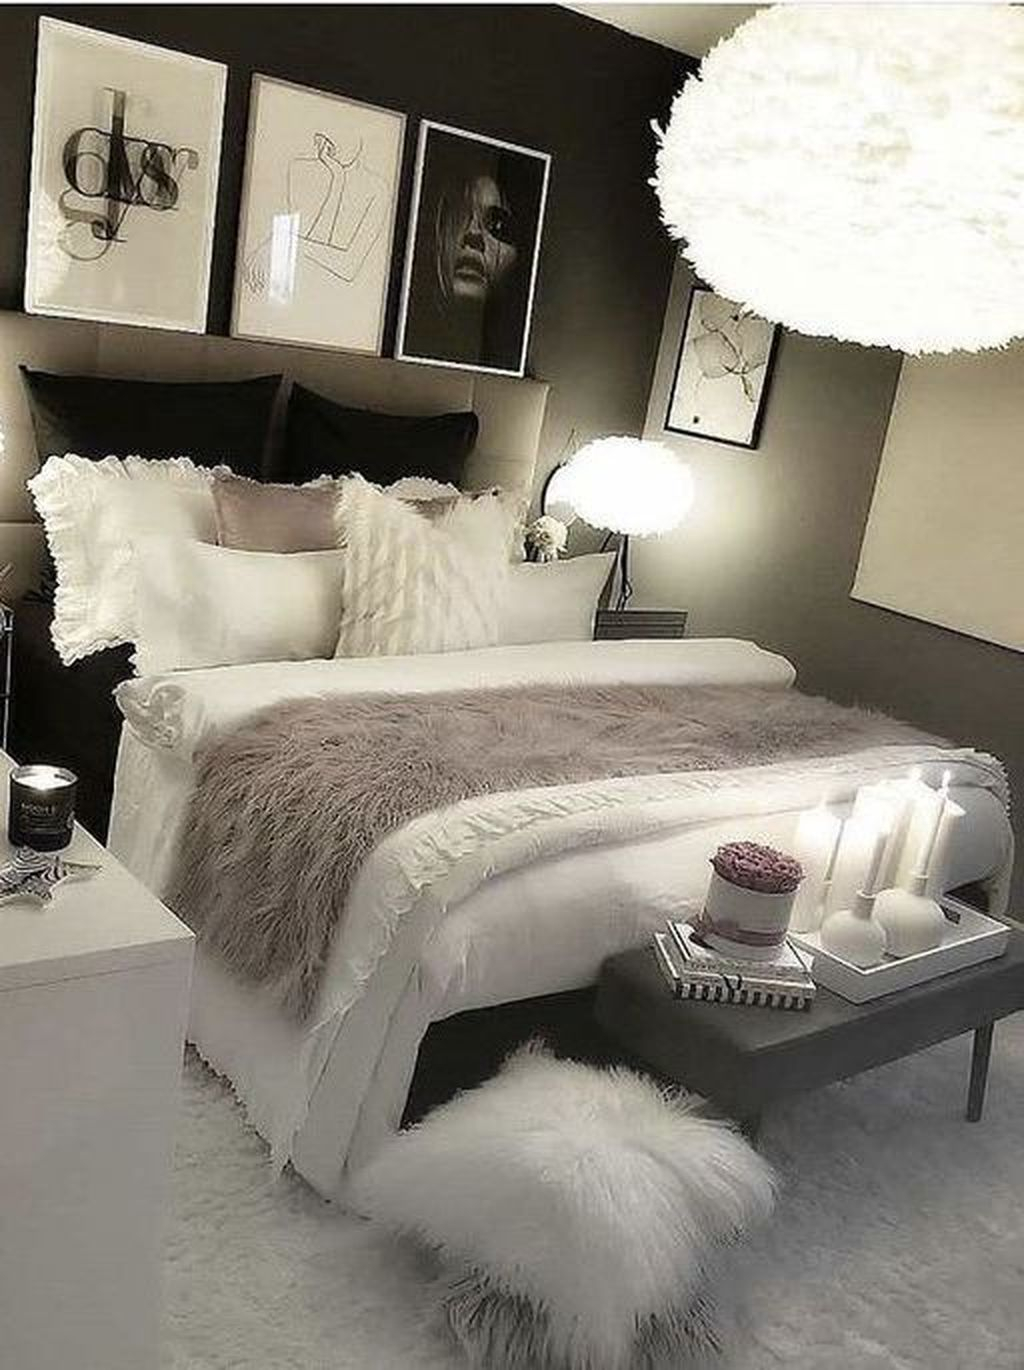 Admiring Bedroom Decor Ideas To Have Right Now 04